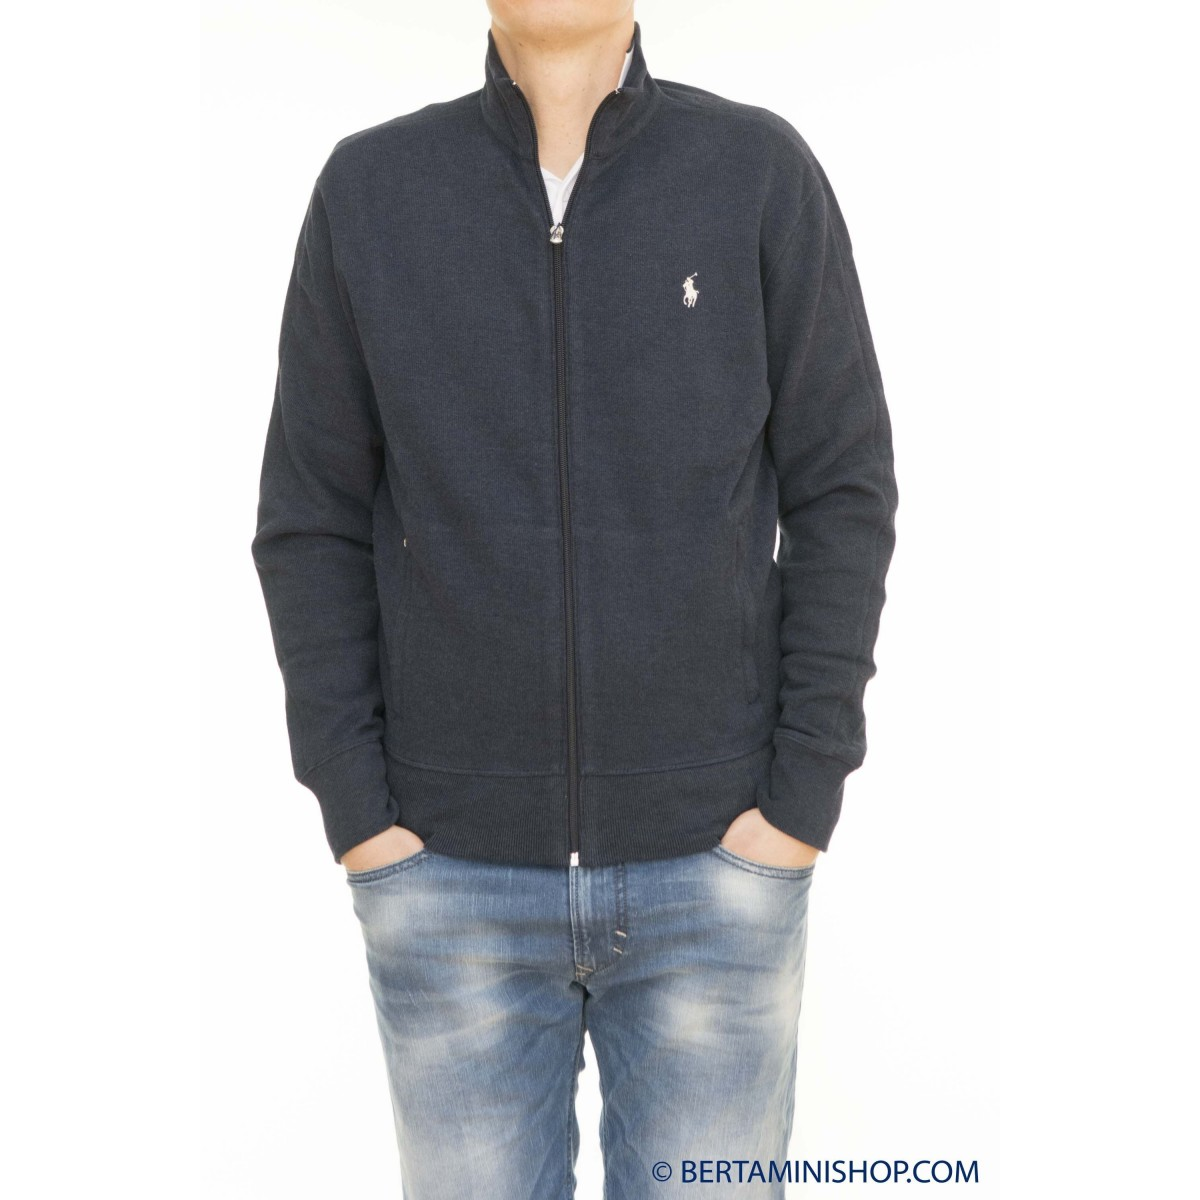 Sweatshirt Ralph Lauren Manner - A18Kay06Chg88